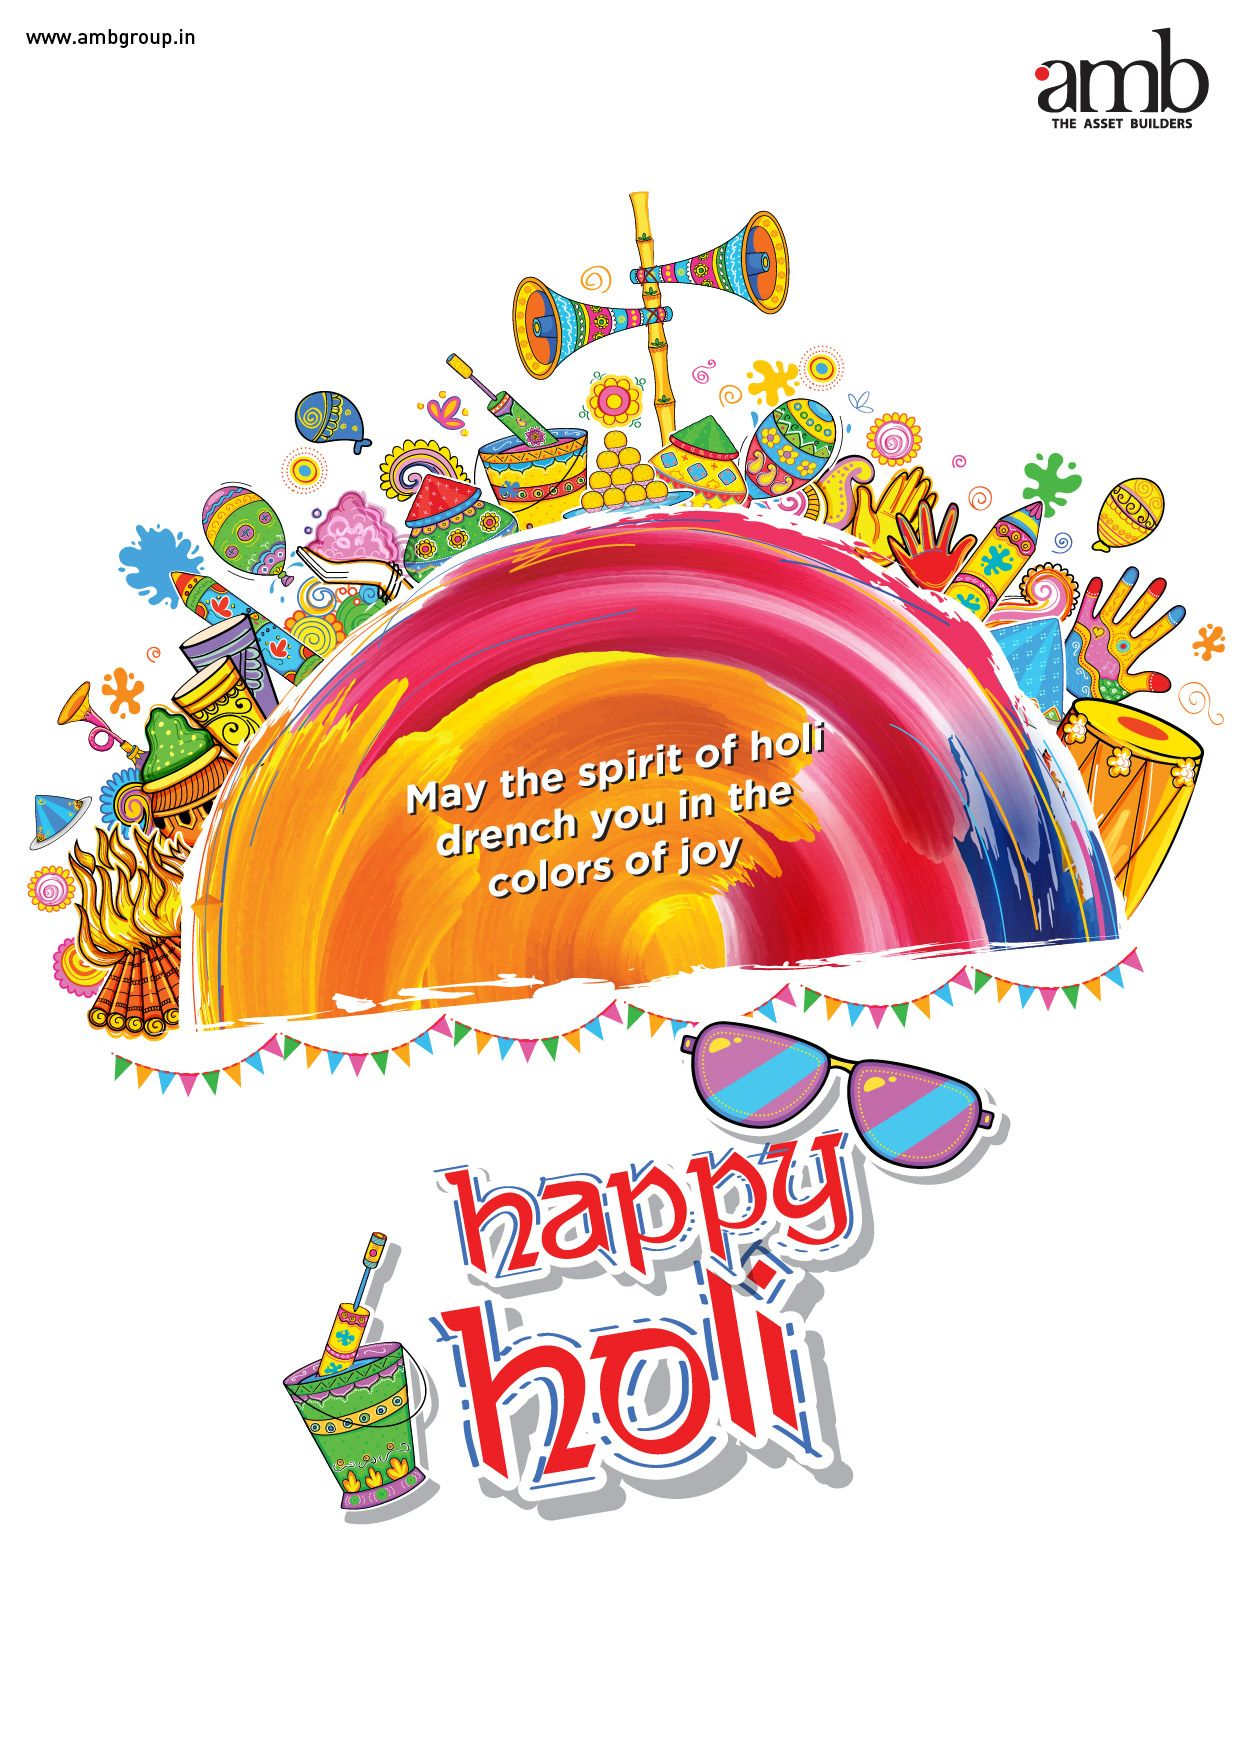 Amb Group Wishes You A Very Happy Holi May God Gift You All The